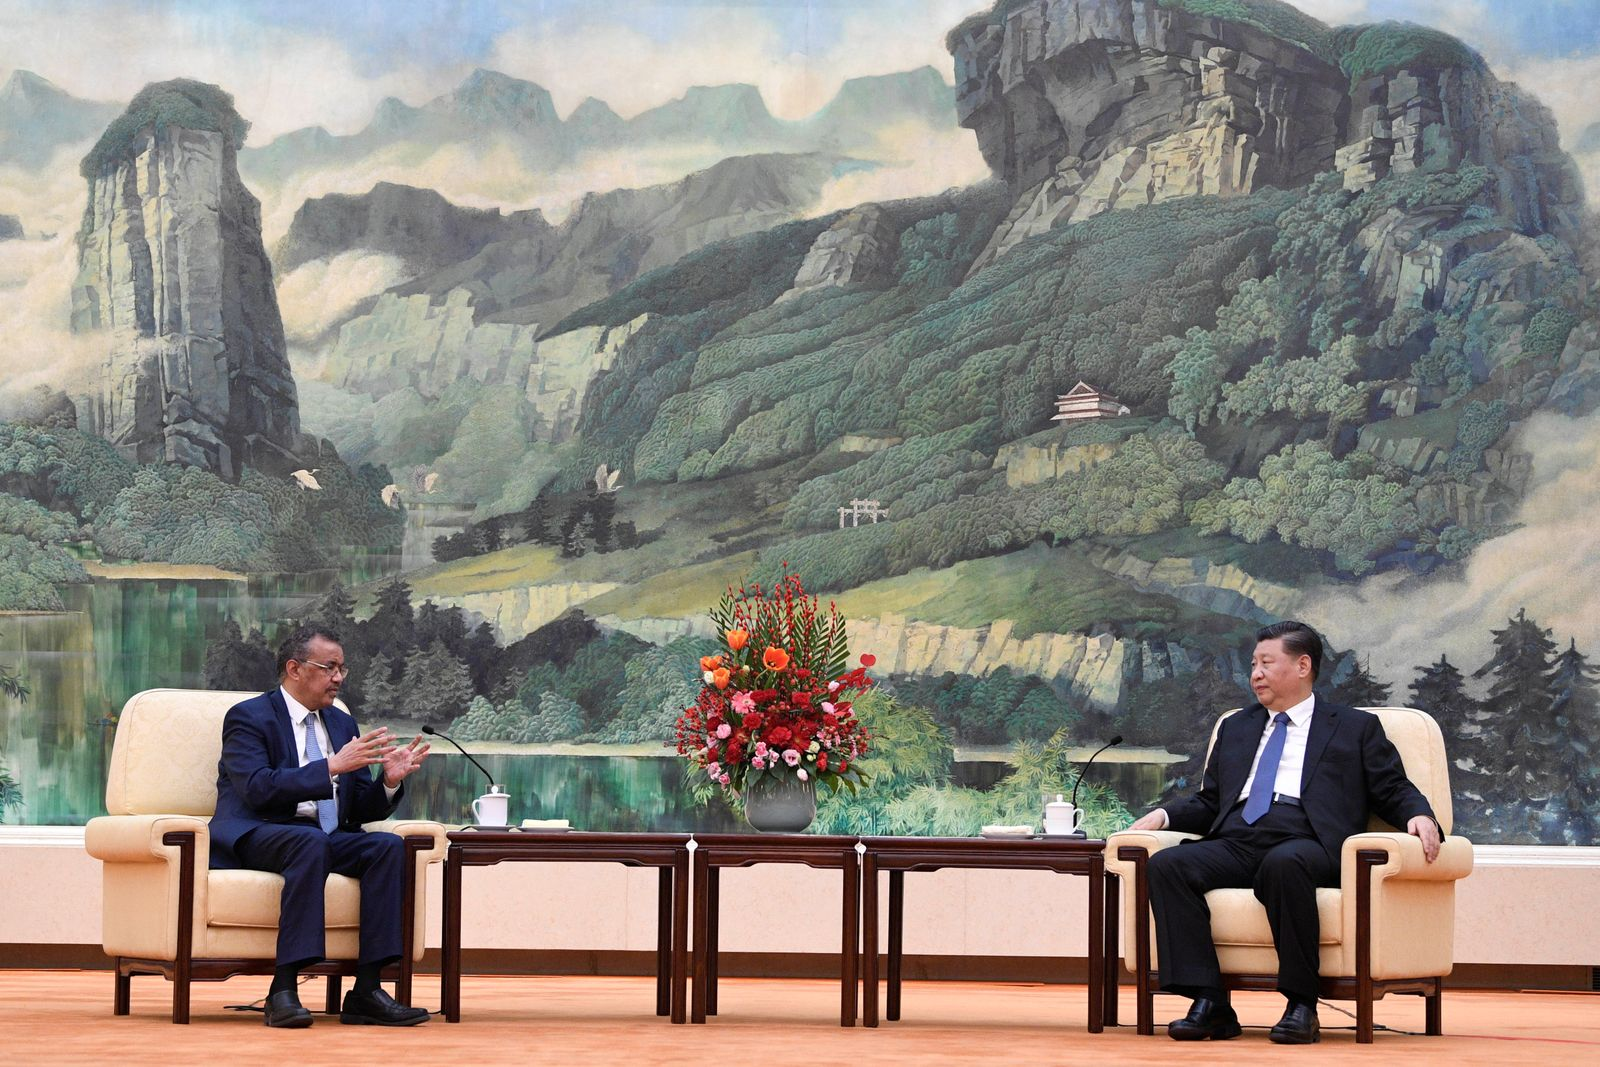 Tedros Adhanom, director general of the World Health Organization, meets with Chinese President Xi jinping before a meeting at the Great Hall of the People in Beijing